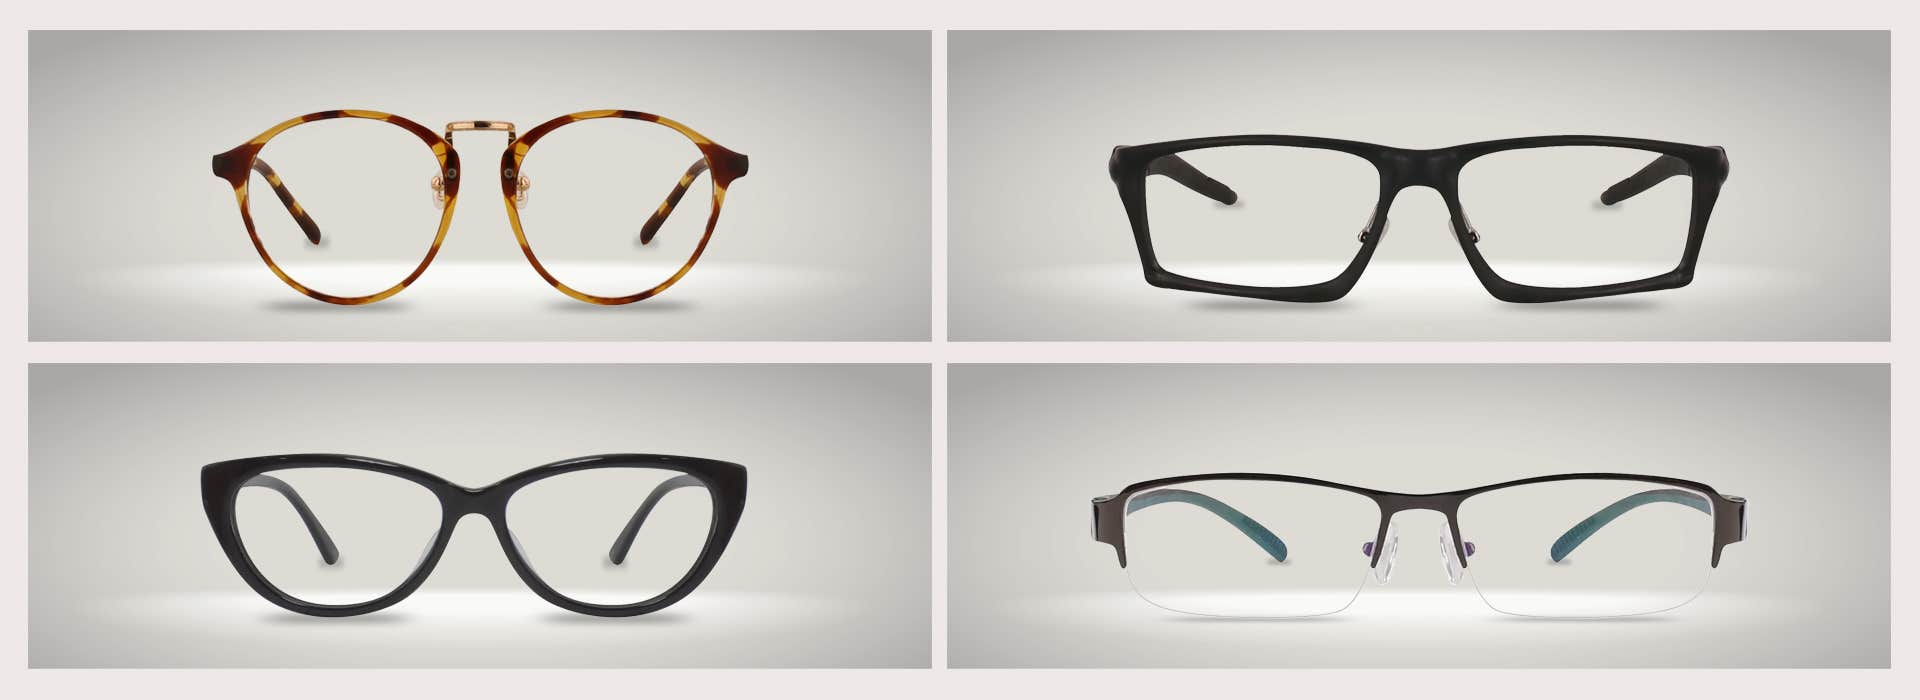 Where To Find The Best Prescription Eyeglasses Online